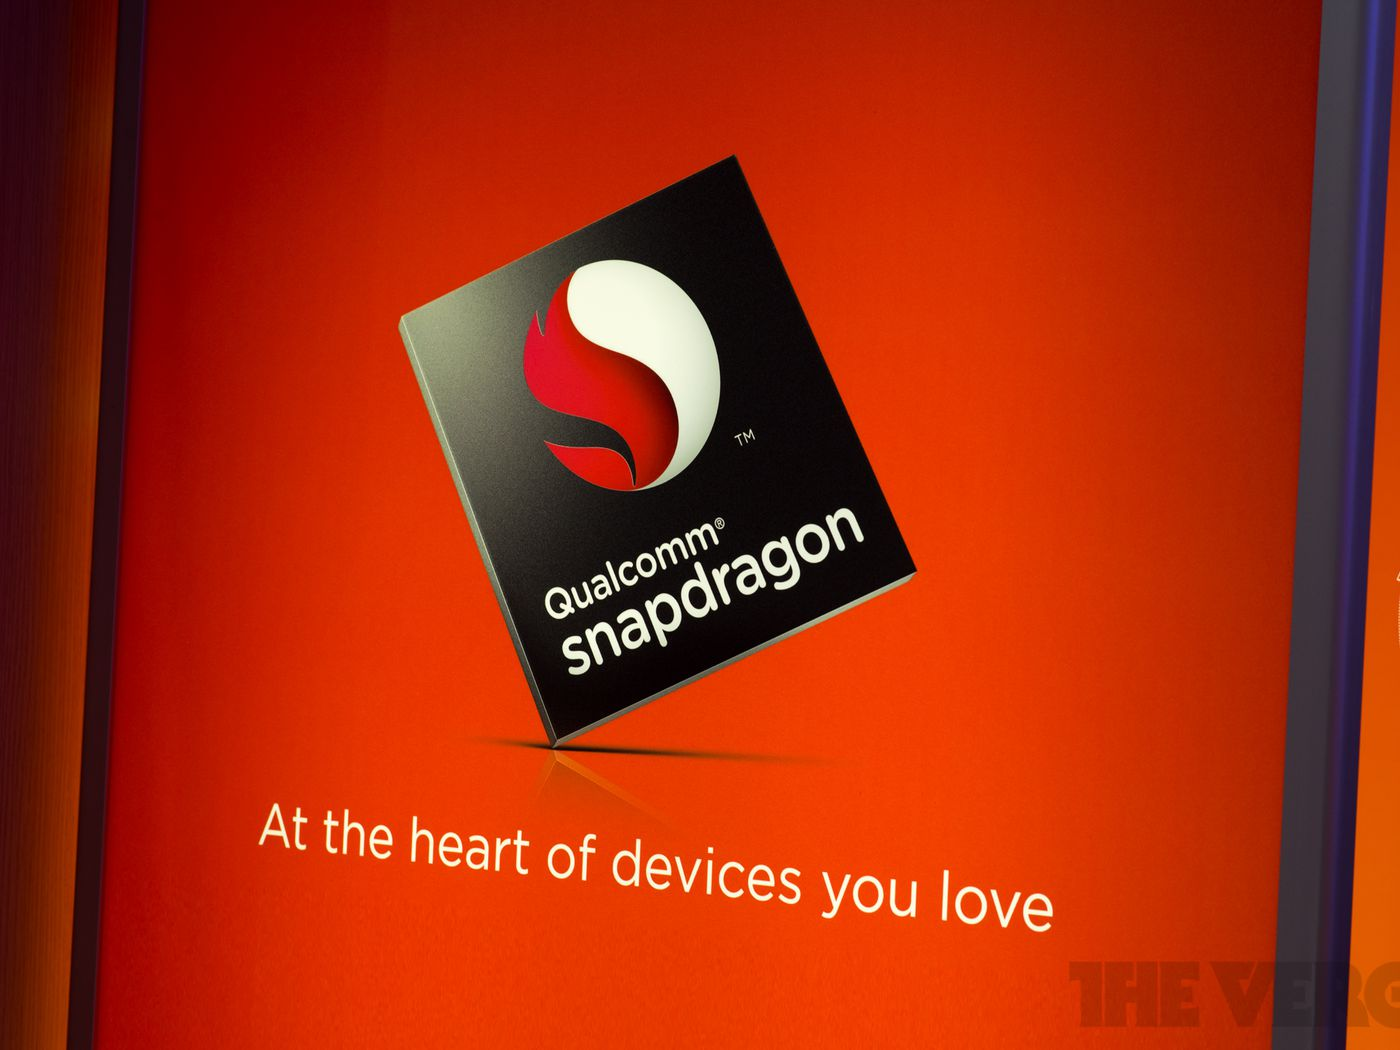 Samsung is probably ditching Qualcomm's Snapdragon 810 for the Galaxy S6 - The Verge